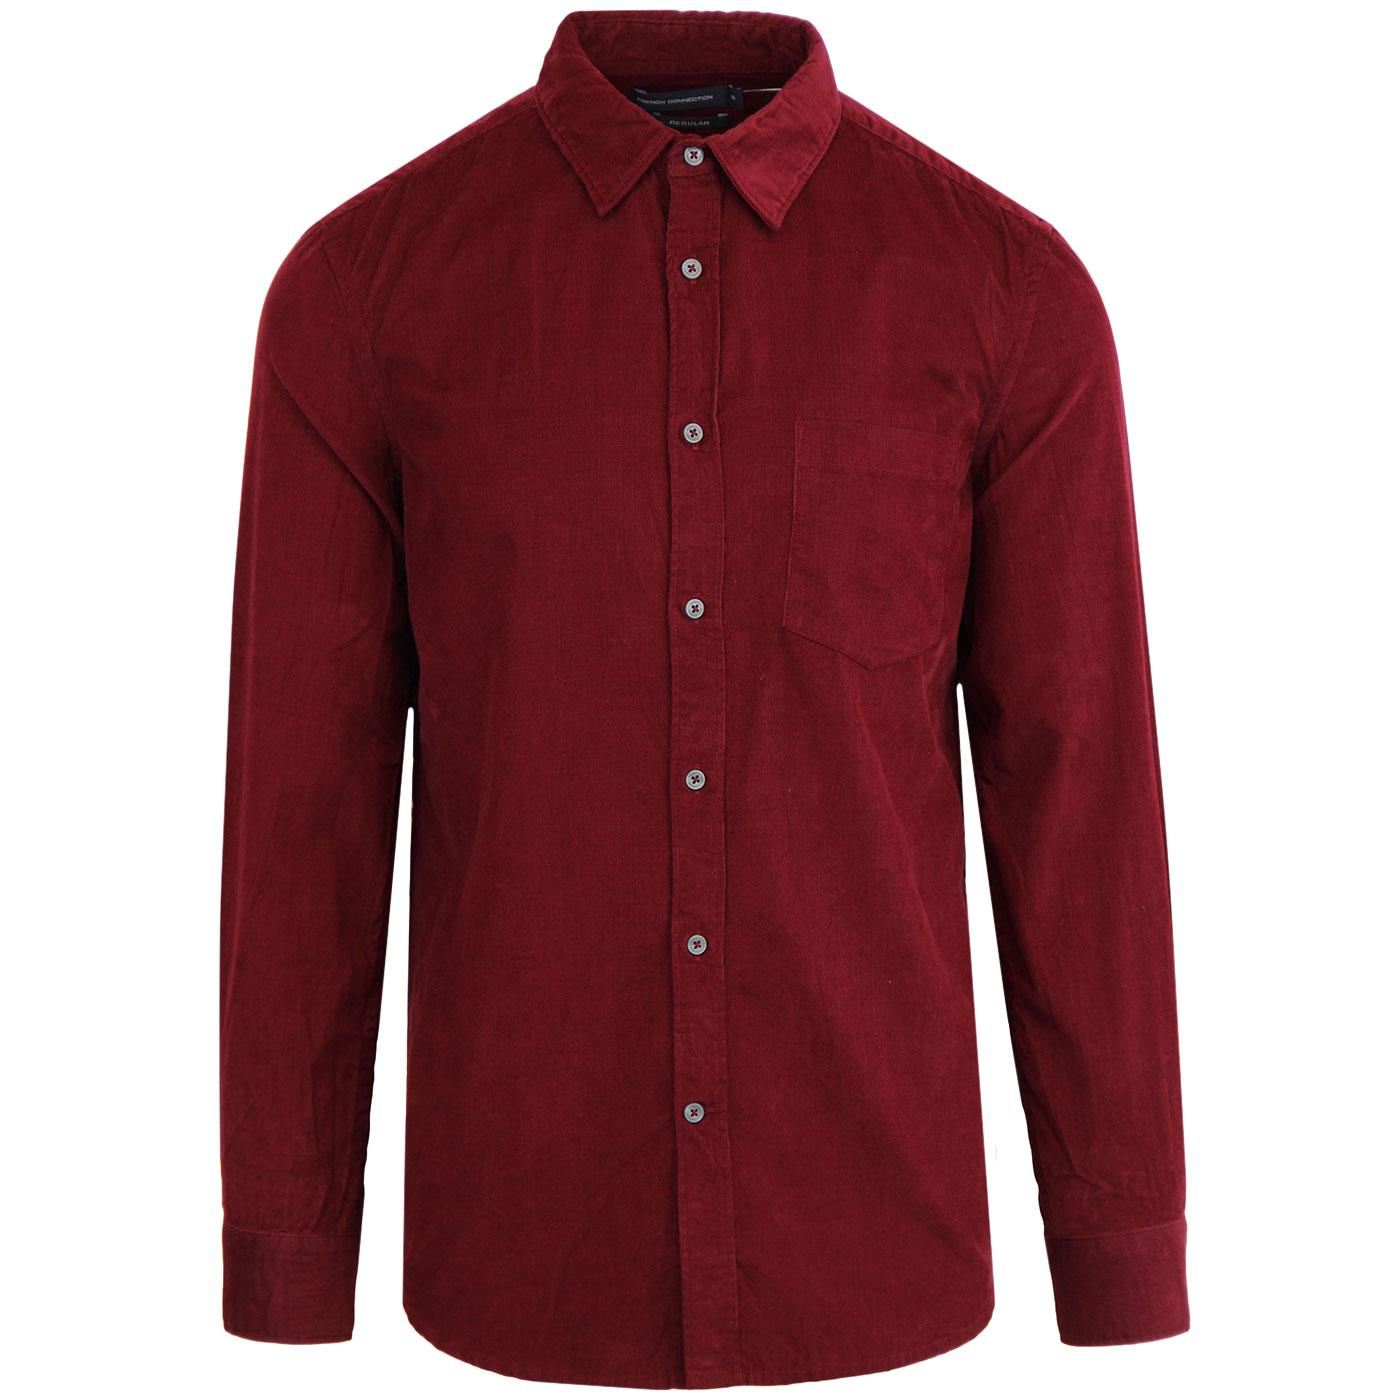 FRENCH CONNECTION Men's Retro Mod Cord Shirt (RR)